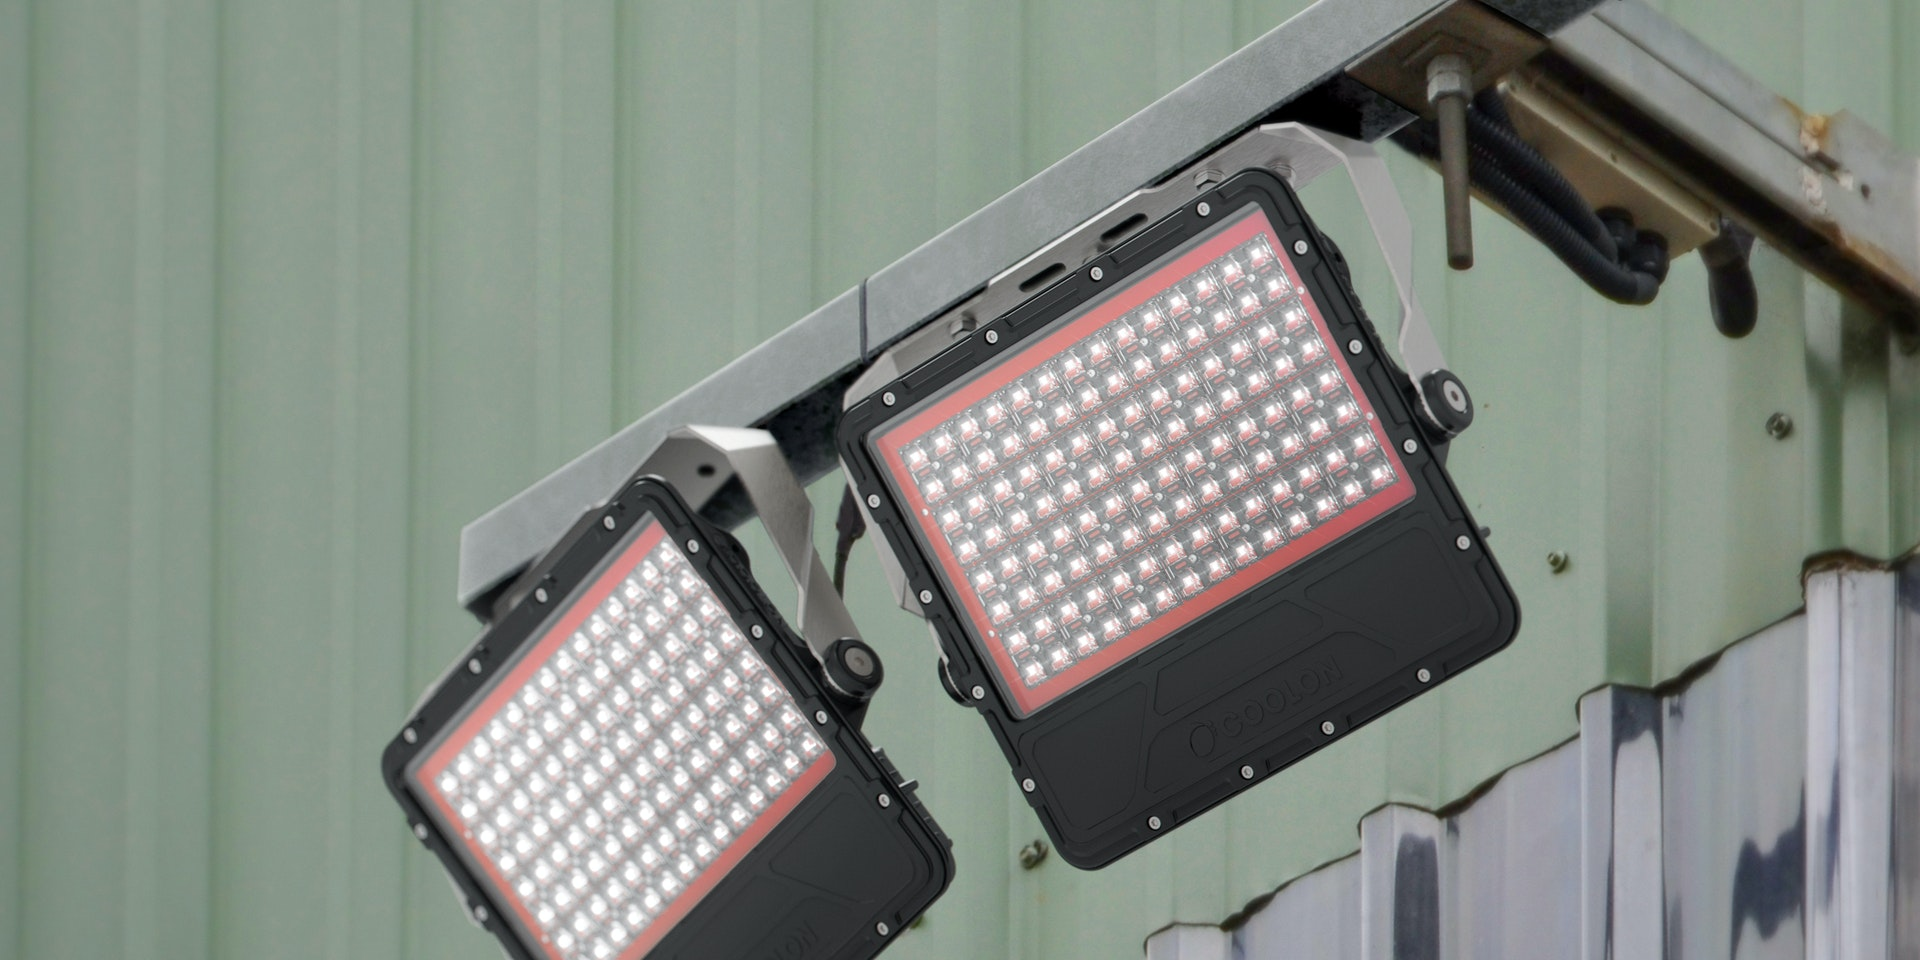 Cassidy LED Flood Light in application, installed on a mining/industrial site, mounted on a wall